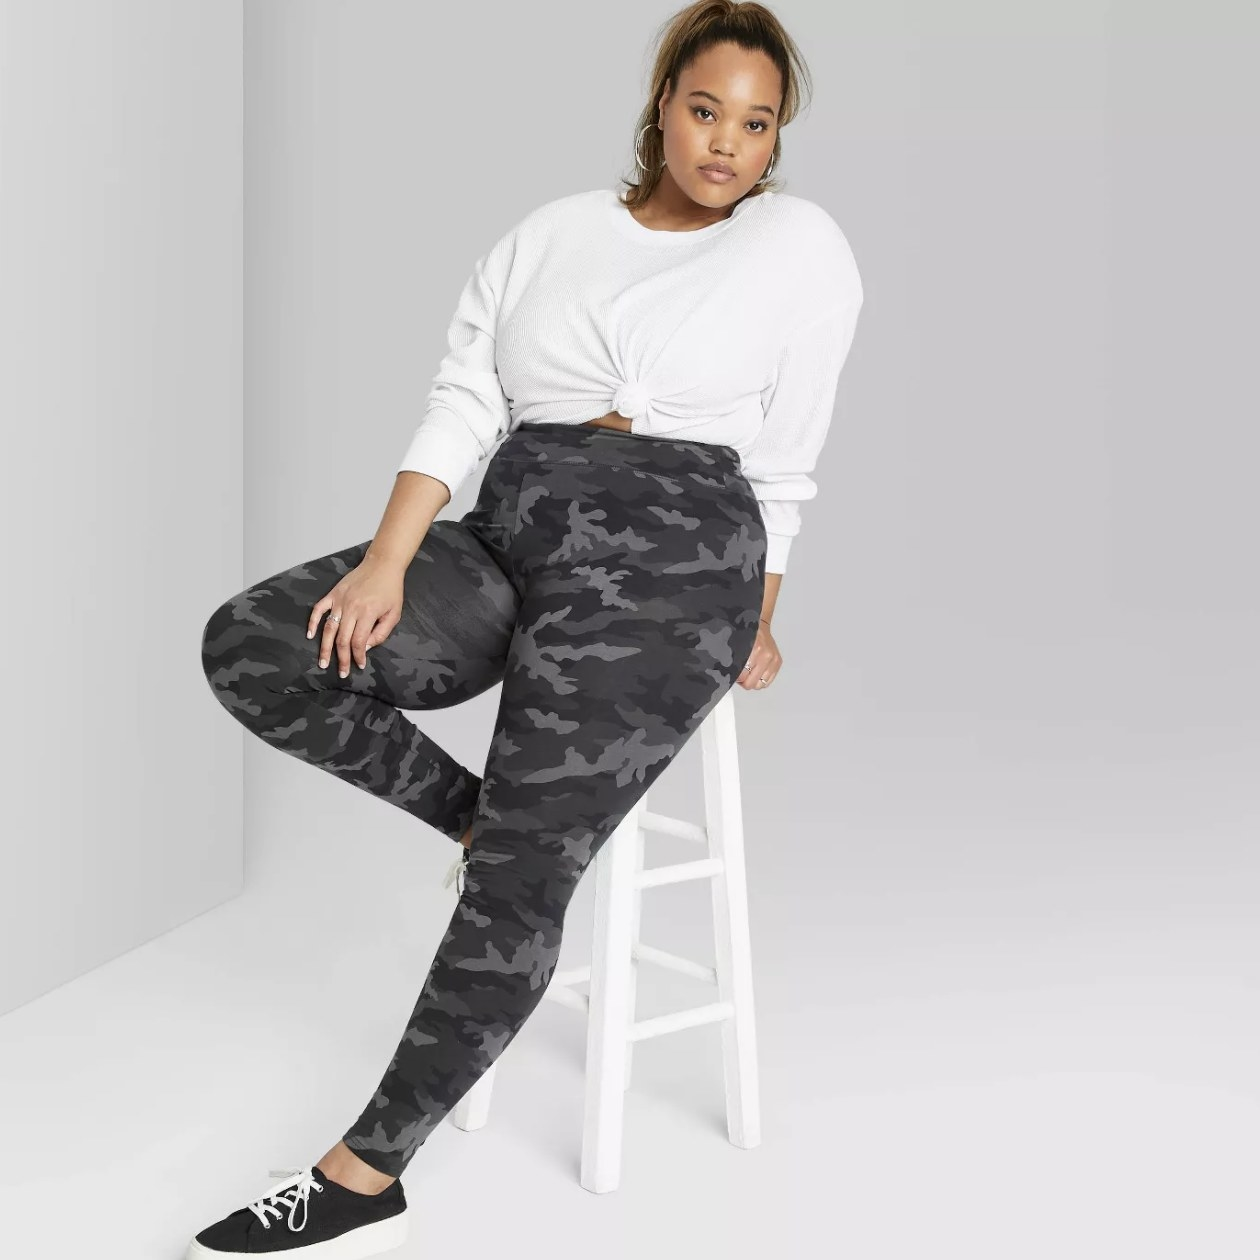 Model wearing the gray camo leggings with a white shirt